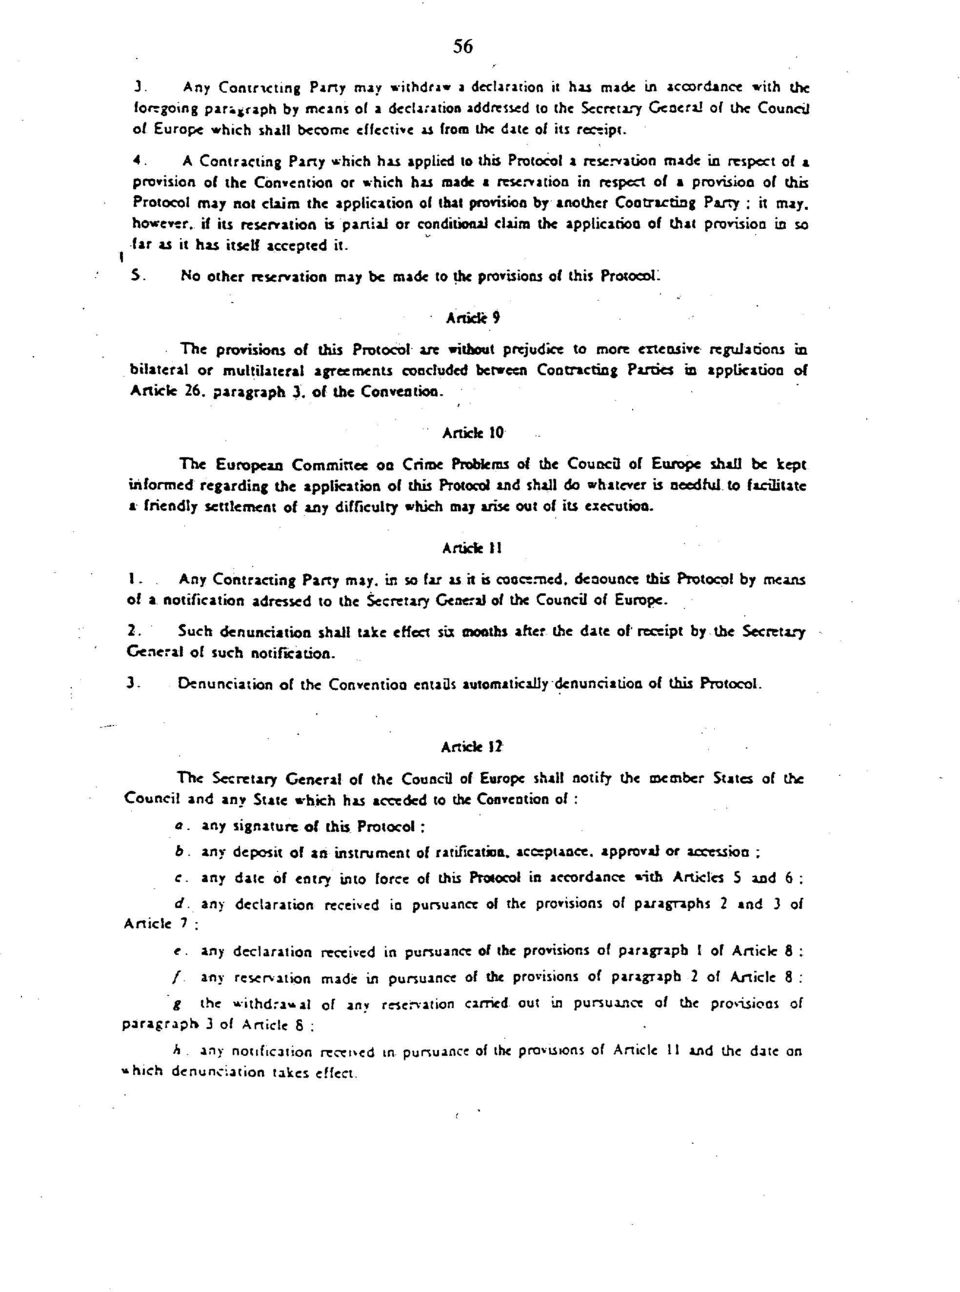 A Contracting Party which has applied to this Protocol a reservation made in respect of a provision of the Convention or which has made a reservation in respect of a provision of (his Protocol may